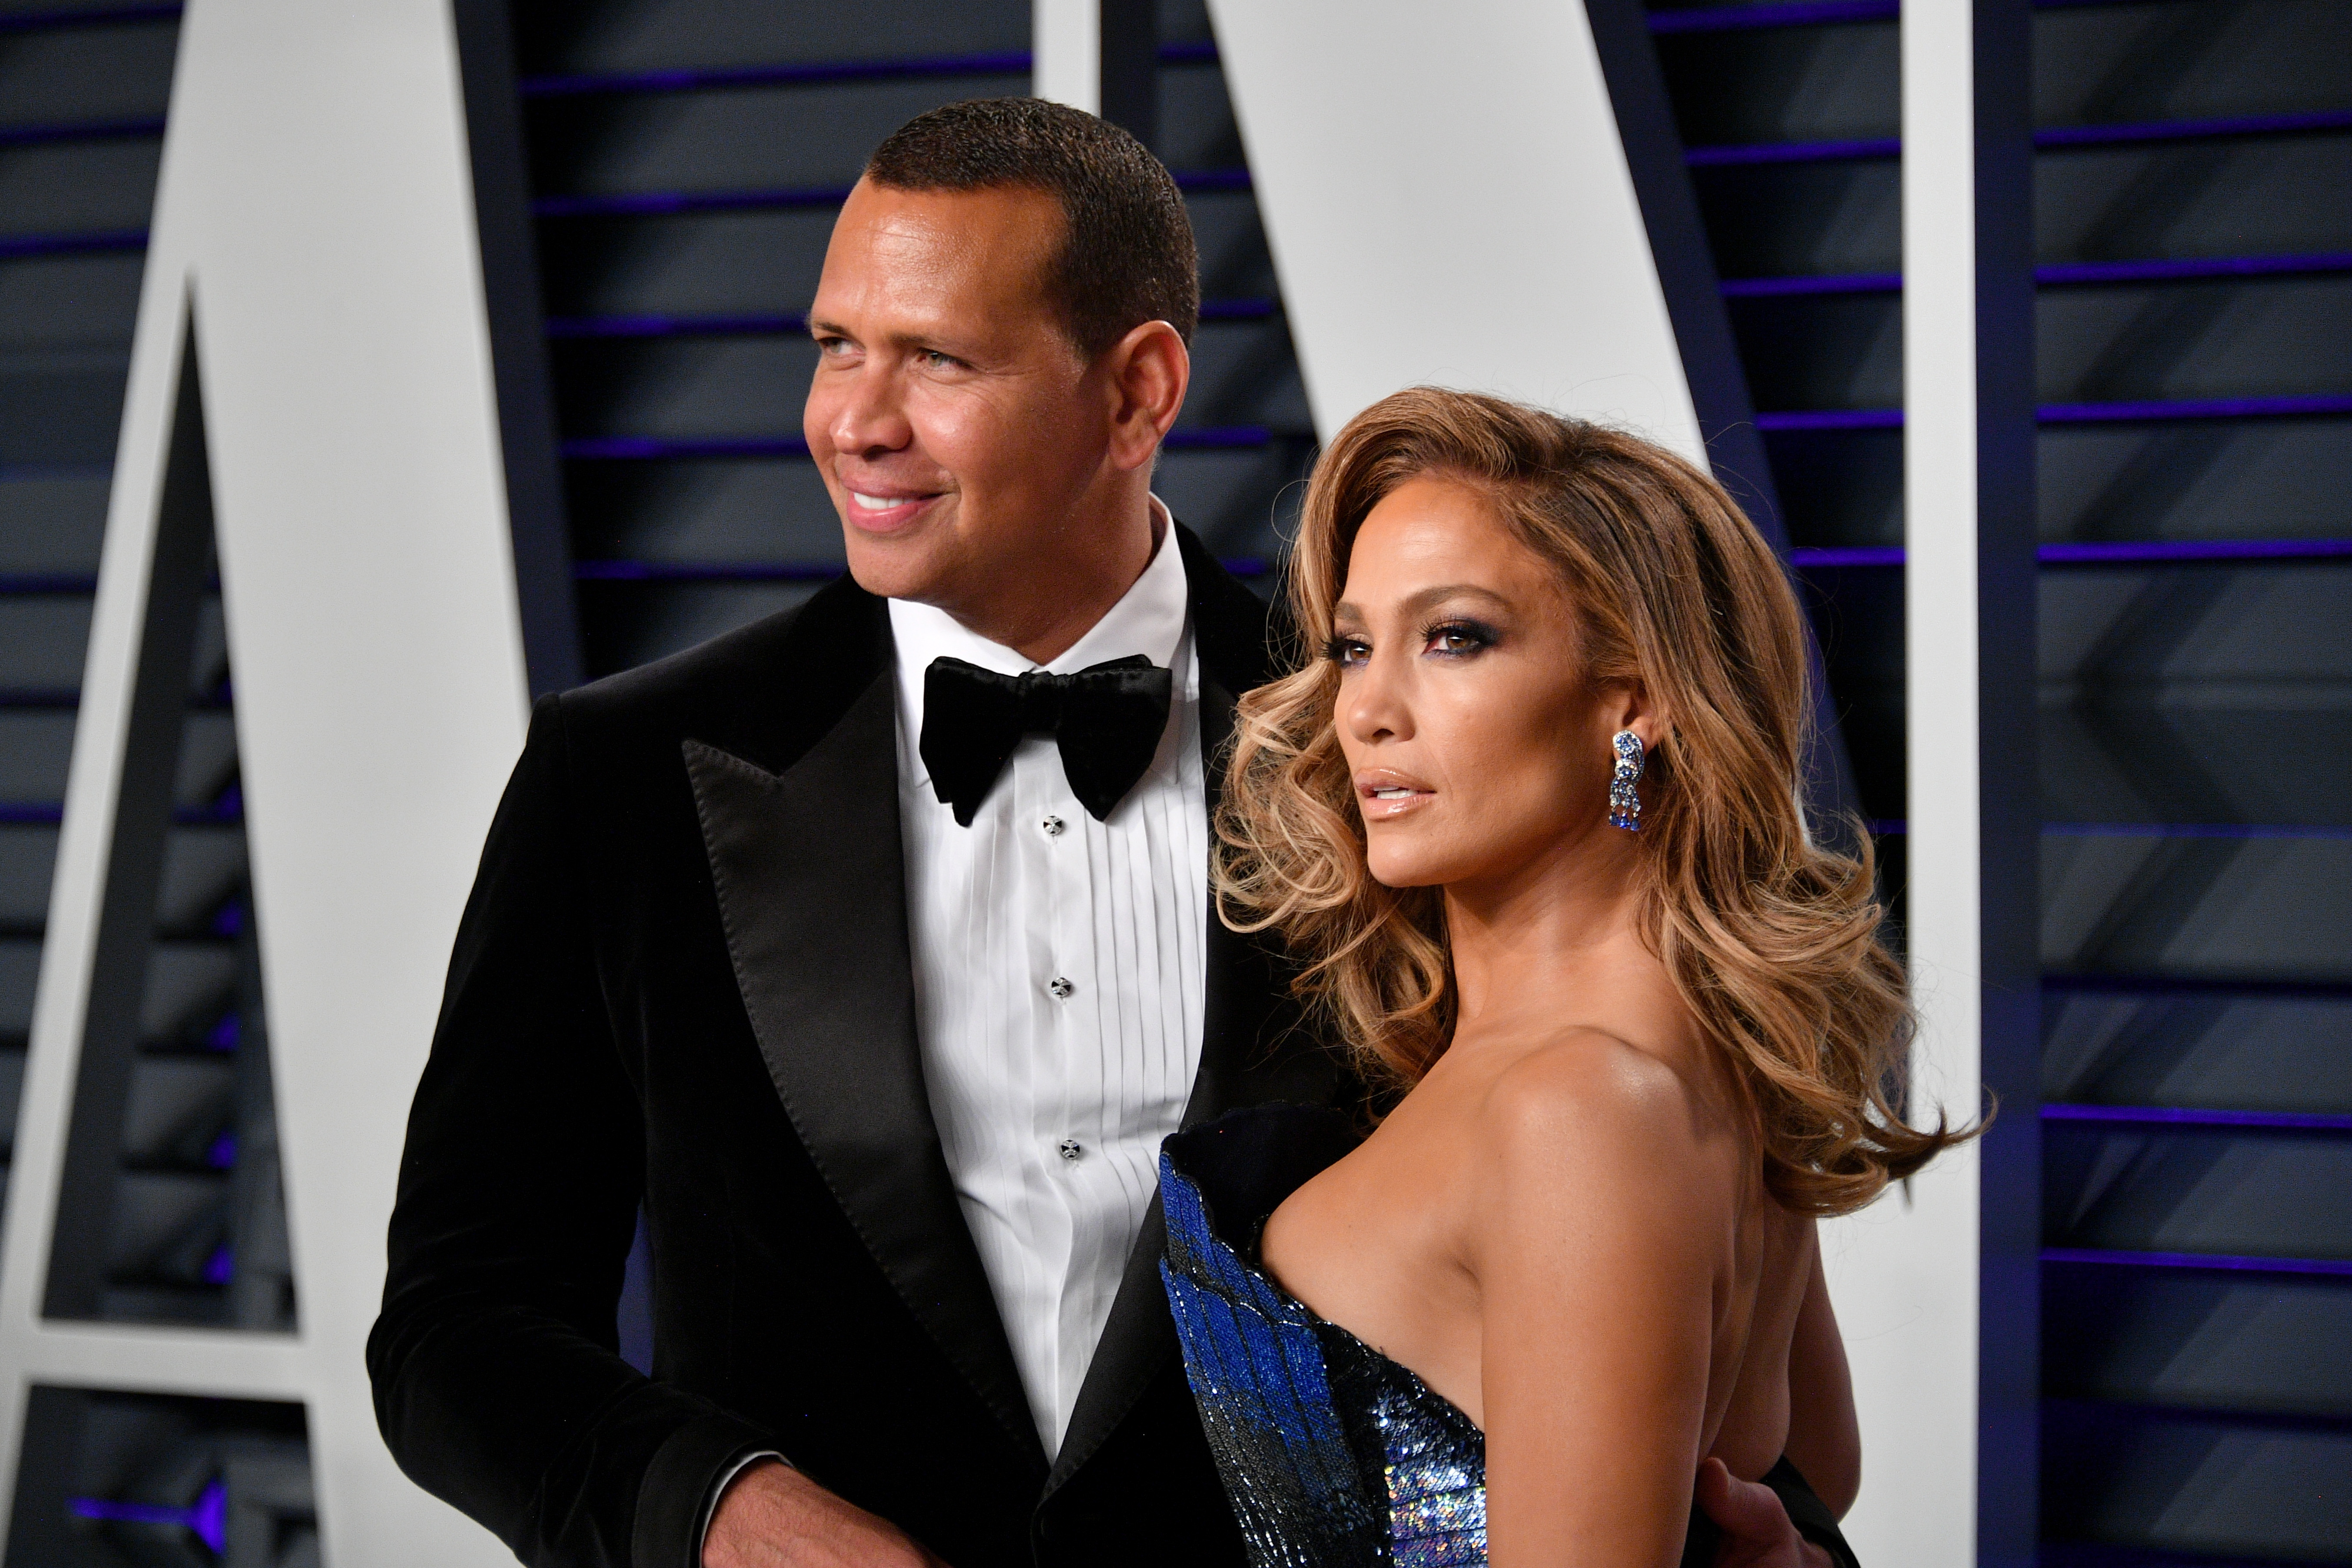 Alex Rodriguez (L) and Jennifer Lopez attend the 2019 Vanity Fair Oscar Party hosted by Radhika Jones at Wallis Annenberg Center for the Performing Arts on February 24, 2019 in Beverly Hills, California. (Photo by Dia Dipasupil/Getty Images)